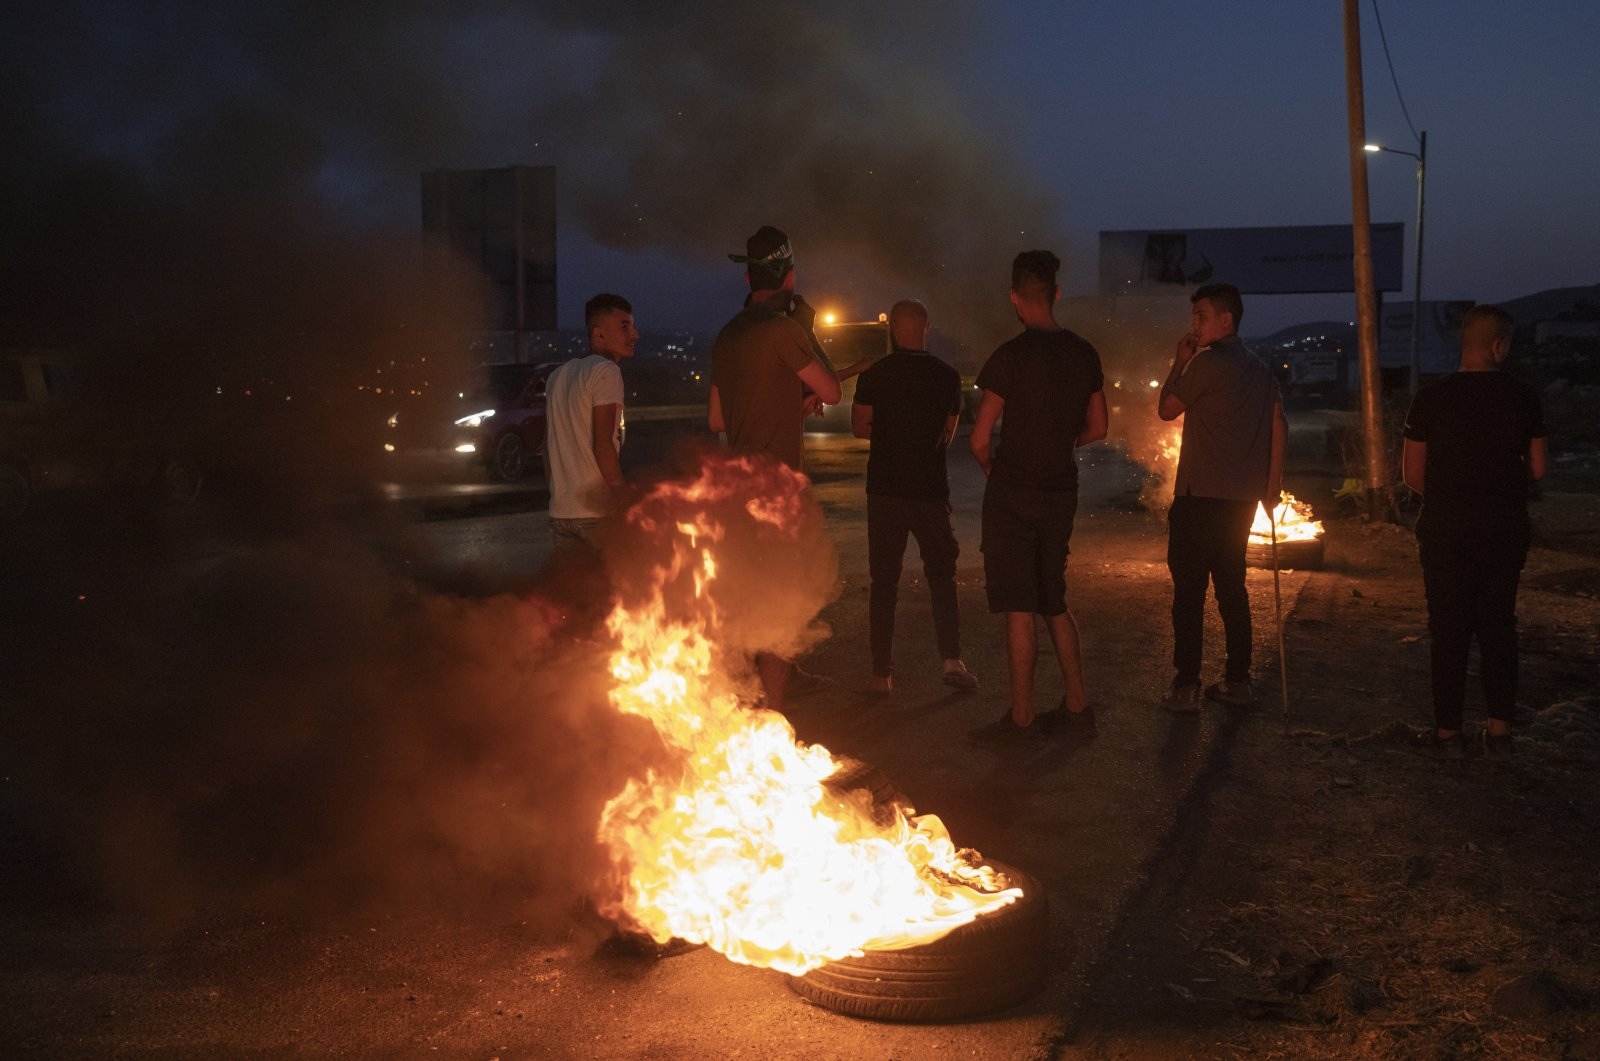 Protesters set tires on fire during clashes with Israeli troops following a demonstration supporting Palestinian prisoners in Israeli jails, at the entrance of the West Bank city of Nablus, Palestine, Monday, Sept. 13, 2021. (AP Photo)